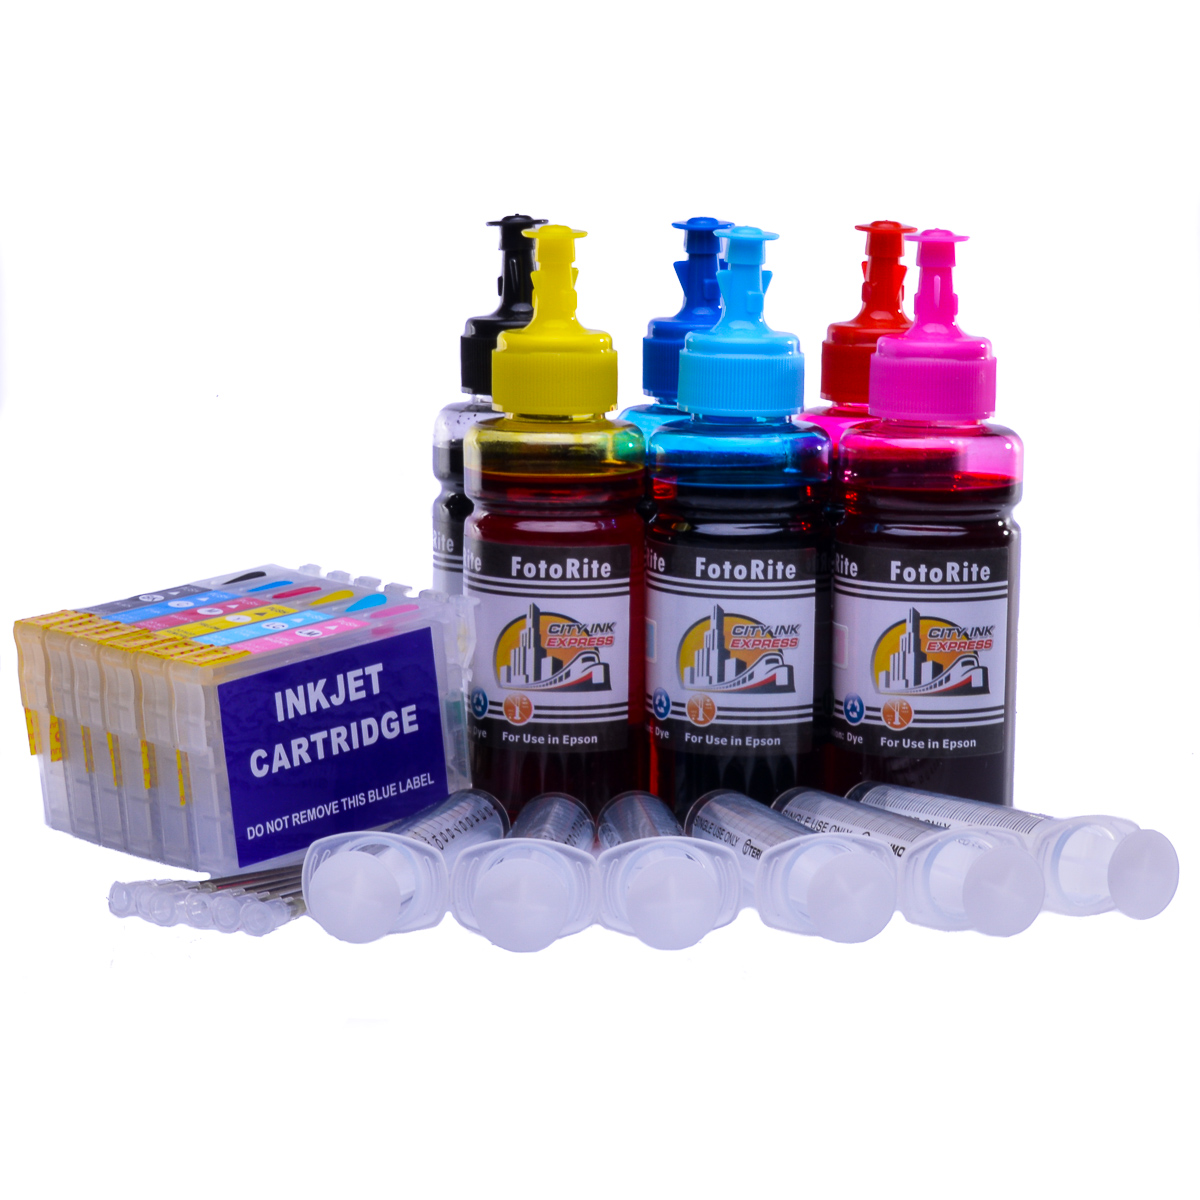 Refillable T0791-T0796 Multipack Cheap printer cartridges for Epson Stylus R1400 C13T0791-6 dye ink